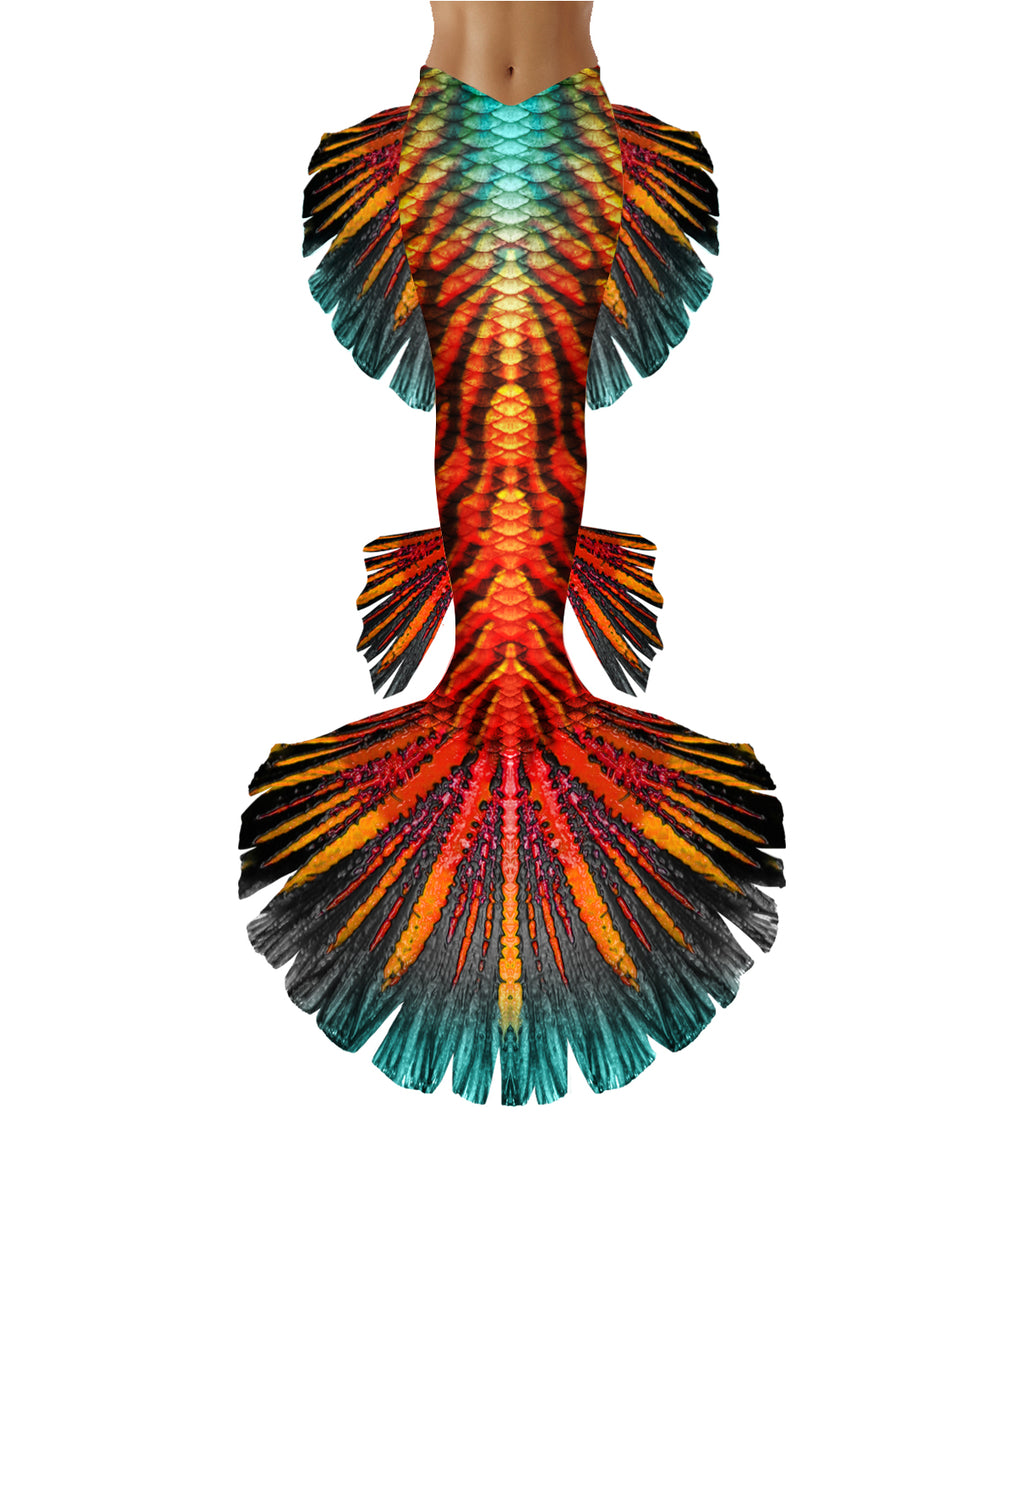 Tropic Tiger Mermaid Tail